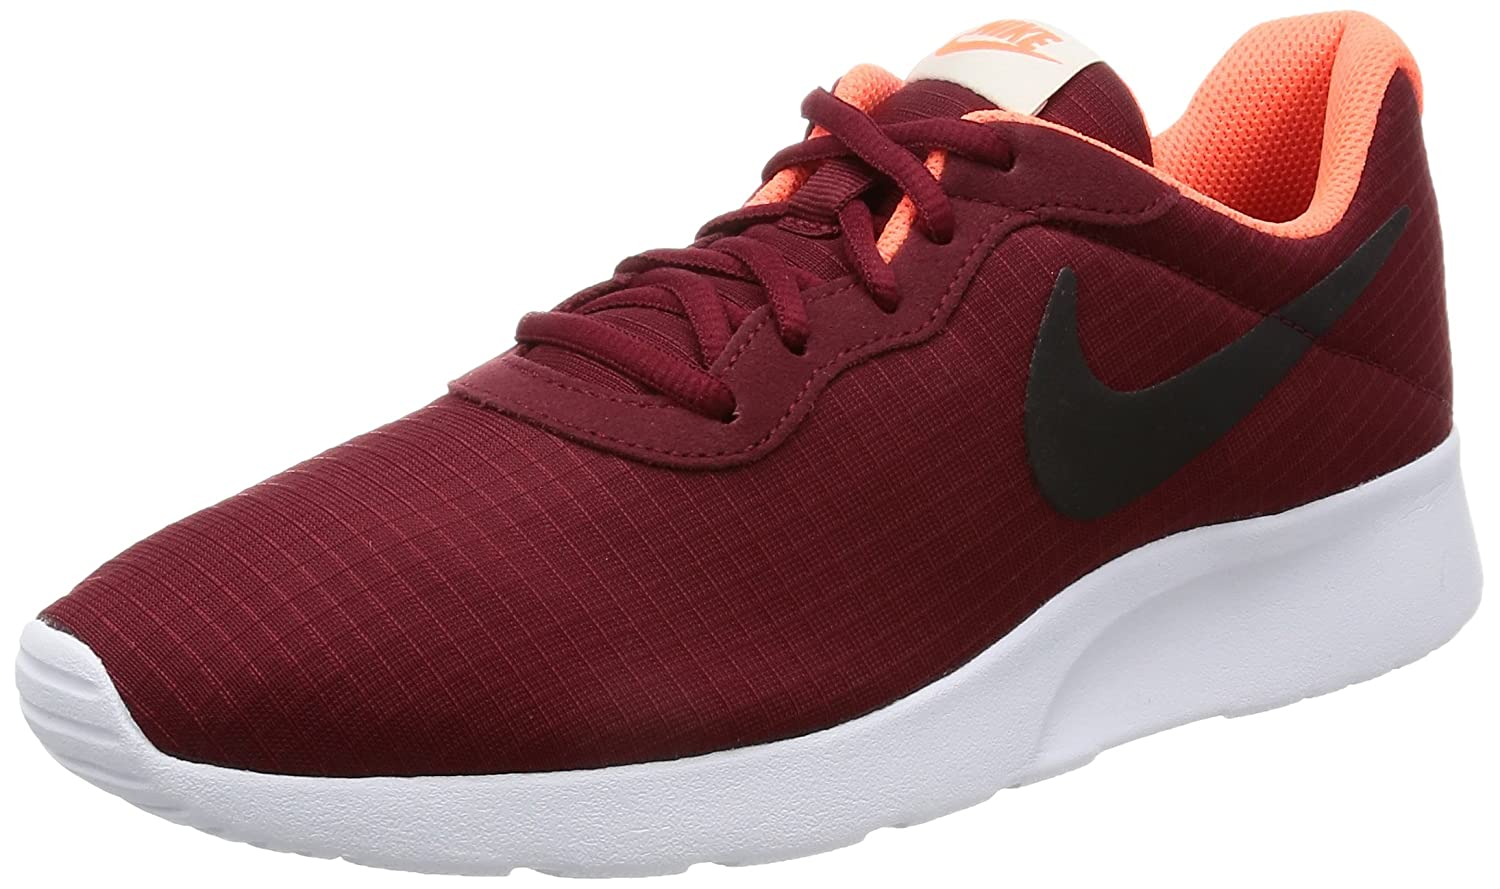 NIKE Men's Tanjun Sneakers, Breathable Textile Uppers and Comfortable Lightweight Cushioning B01EXVVR5I 9.5 D(M) US Red Black Bone